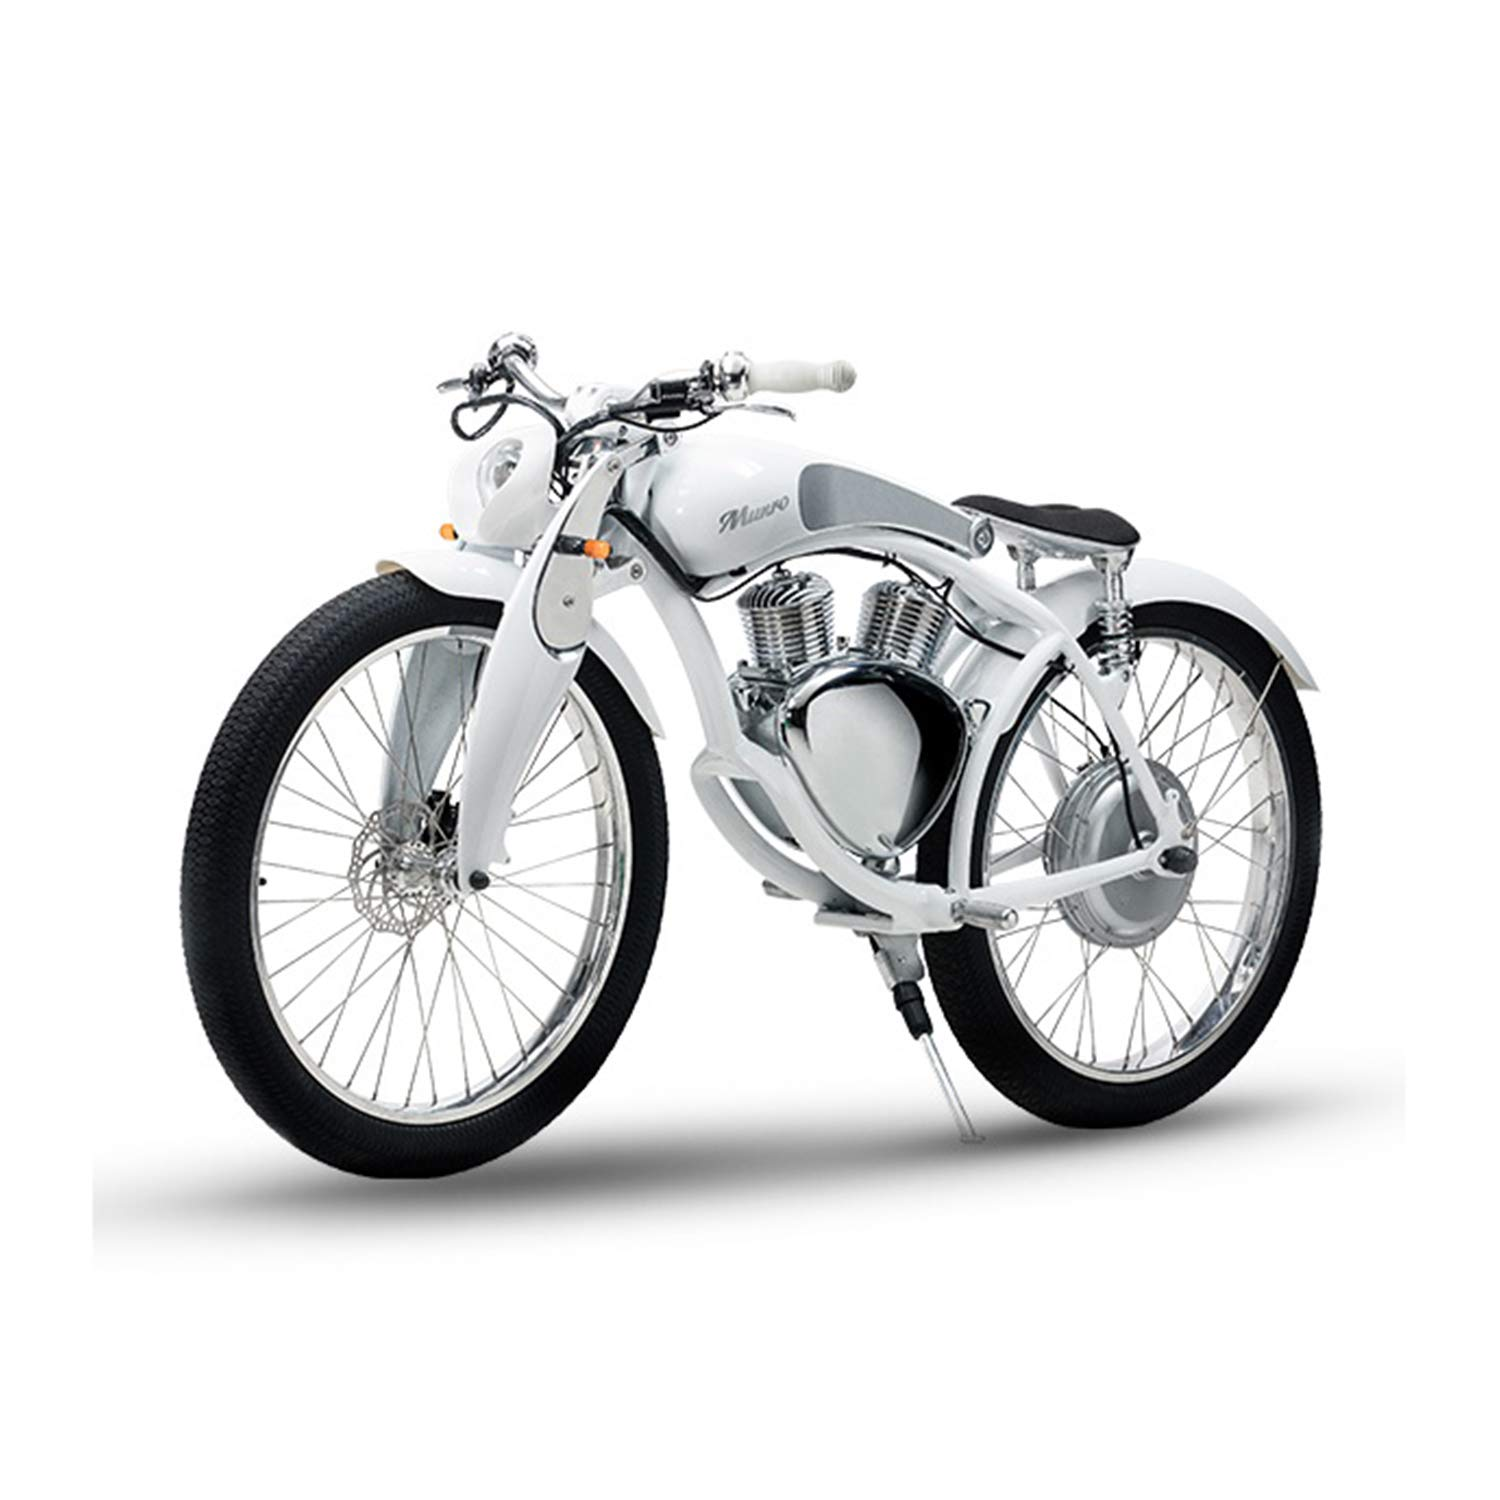 SHI PAO Munro Electric Motorcycle, 2 Wheels Classical Style Retro Motorbike, Removable 48V500W11.6Ah Lithium Battery Green Energy CityBeach Cruiser